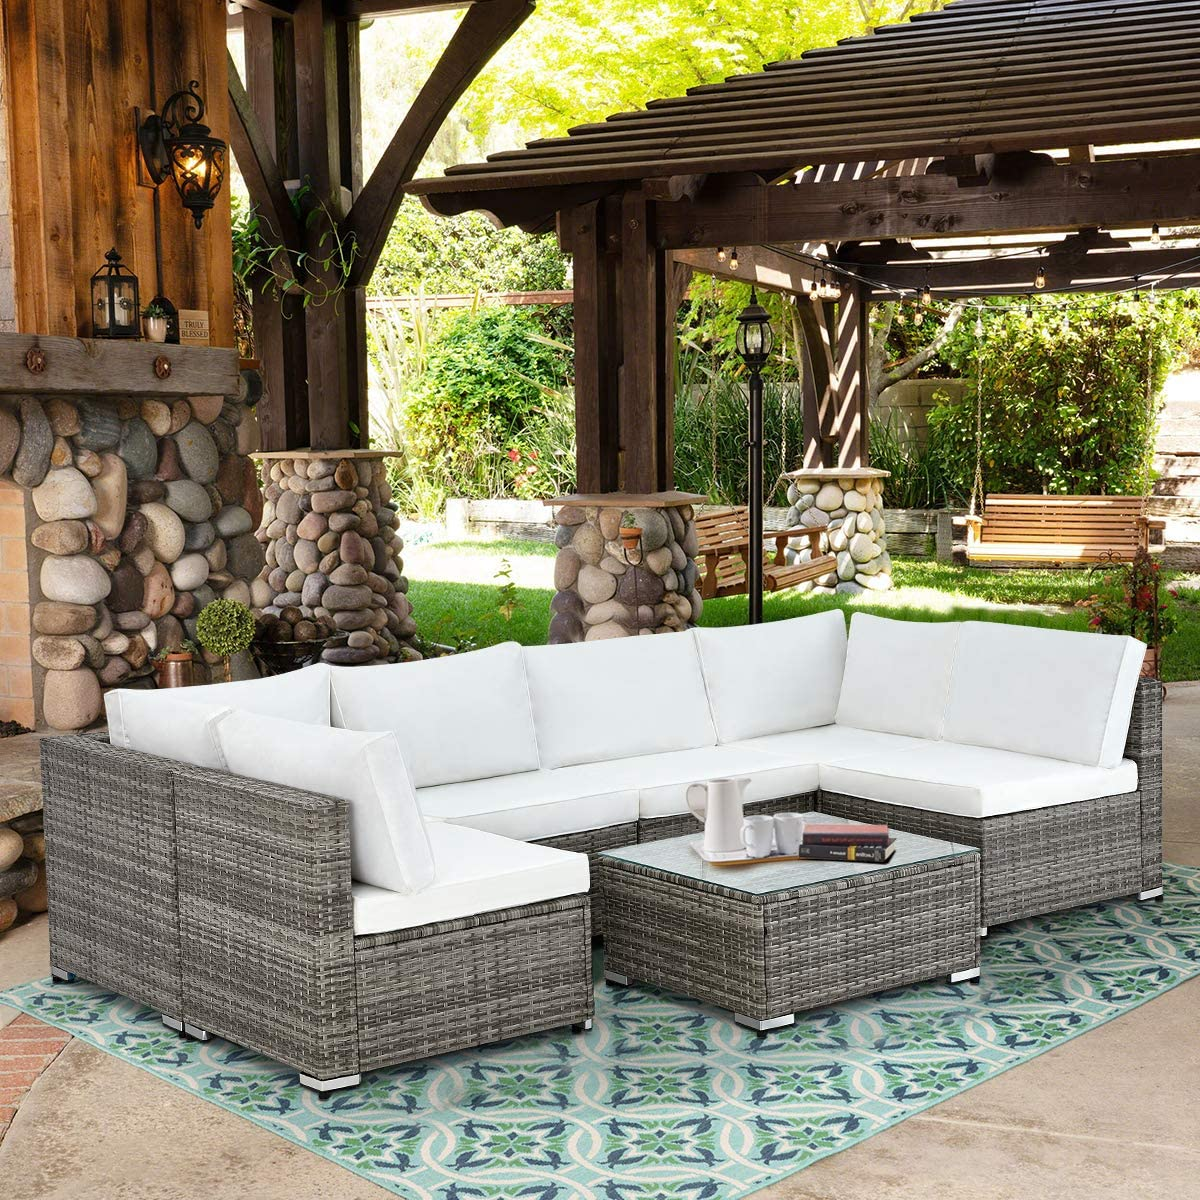 U-MAX 7 Piece Outdoor Patio Furniture Set, Gray PE Rattan Wicker Sofa Set, Outdoor Sectional Furniture Chair Set with White Cushions and Tea Table, White